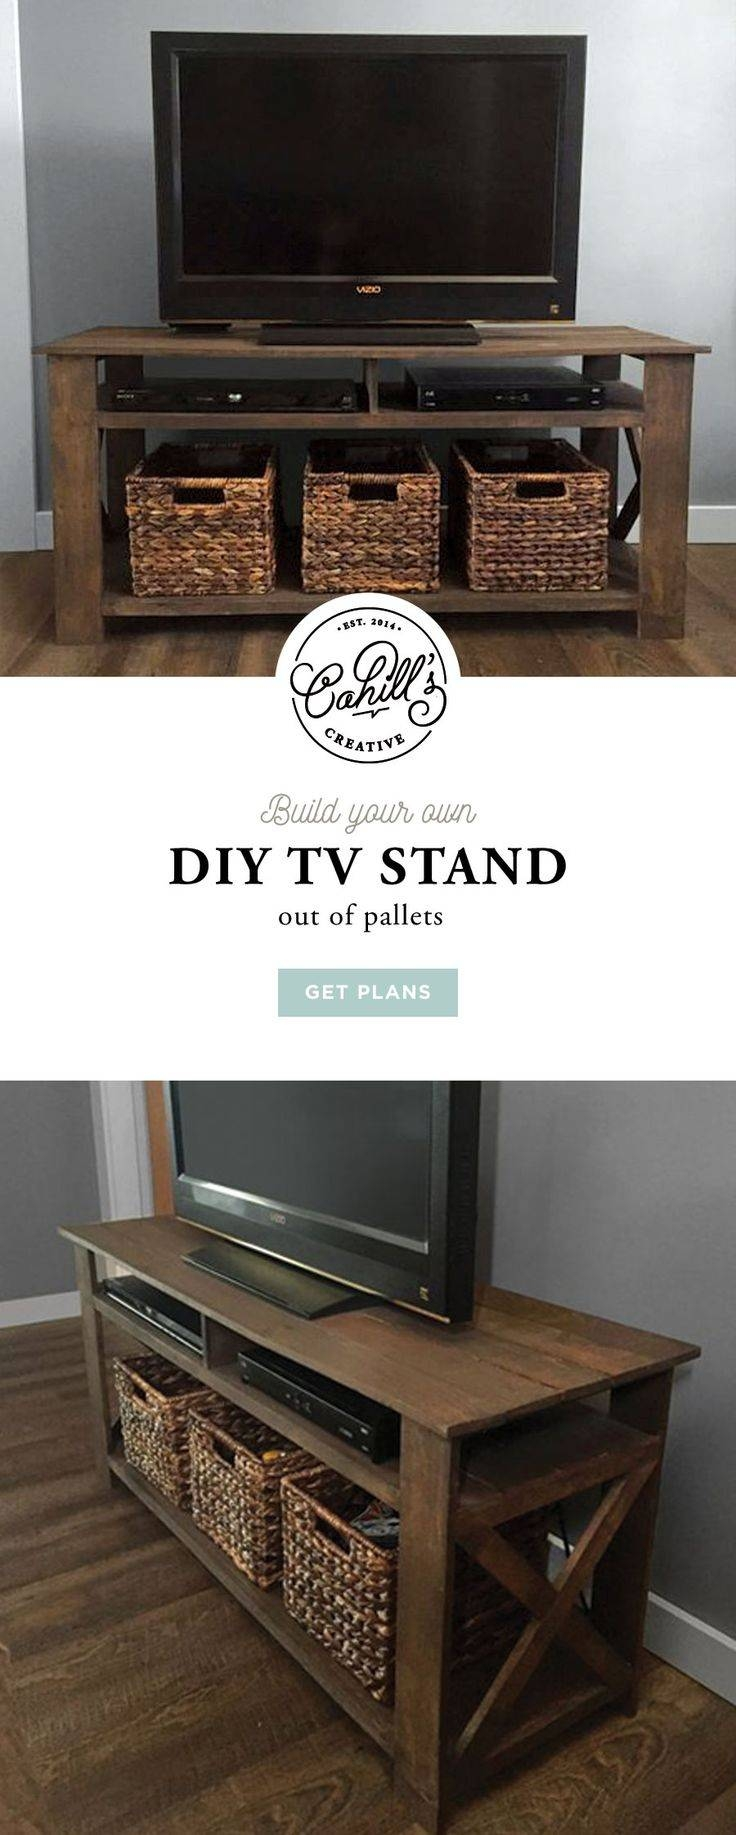 Best 25+ Antique Tv Stands Ideas On Pinterest | Chalk Paint with regard to Antique Style Tv Stands (Image 6 of 15)